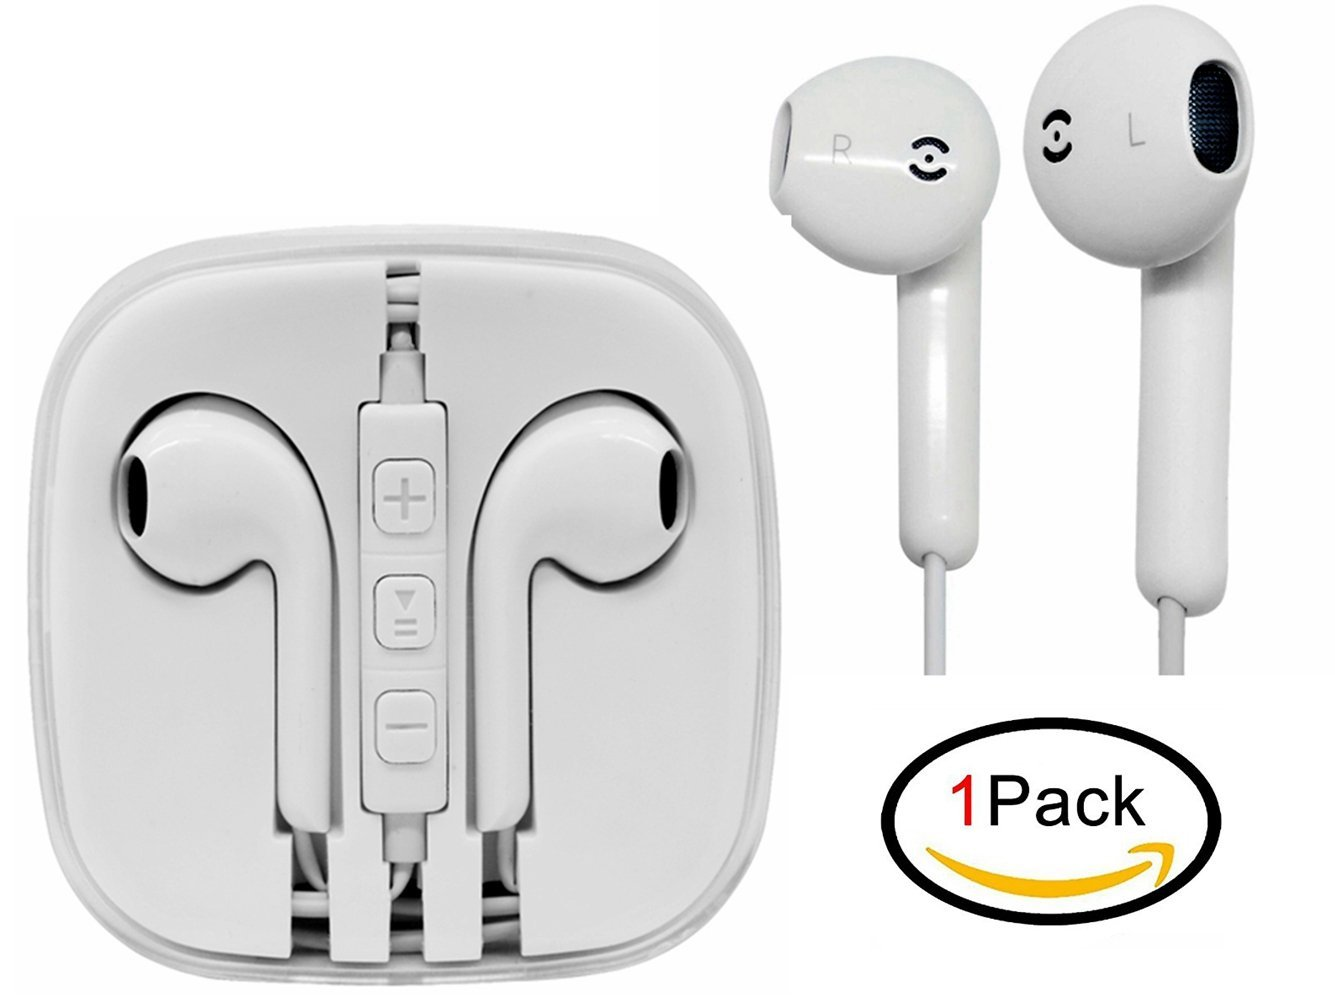 Jiayou Headsets Earbuds for iPhone iPad ipod Samsung for  £3.99